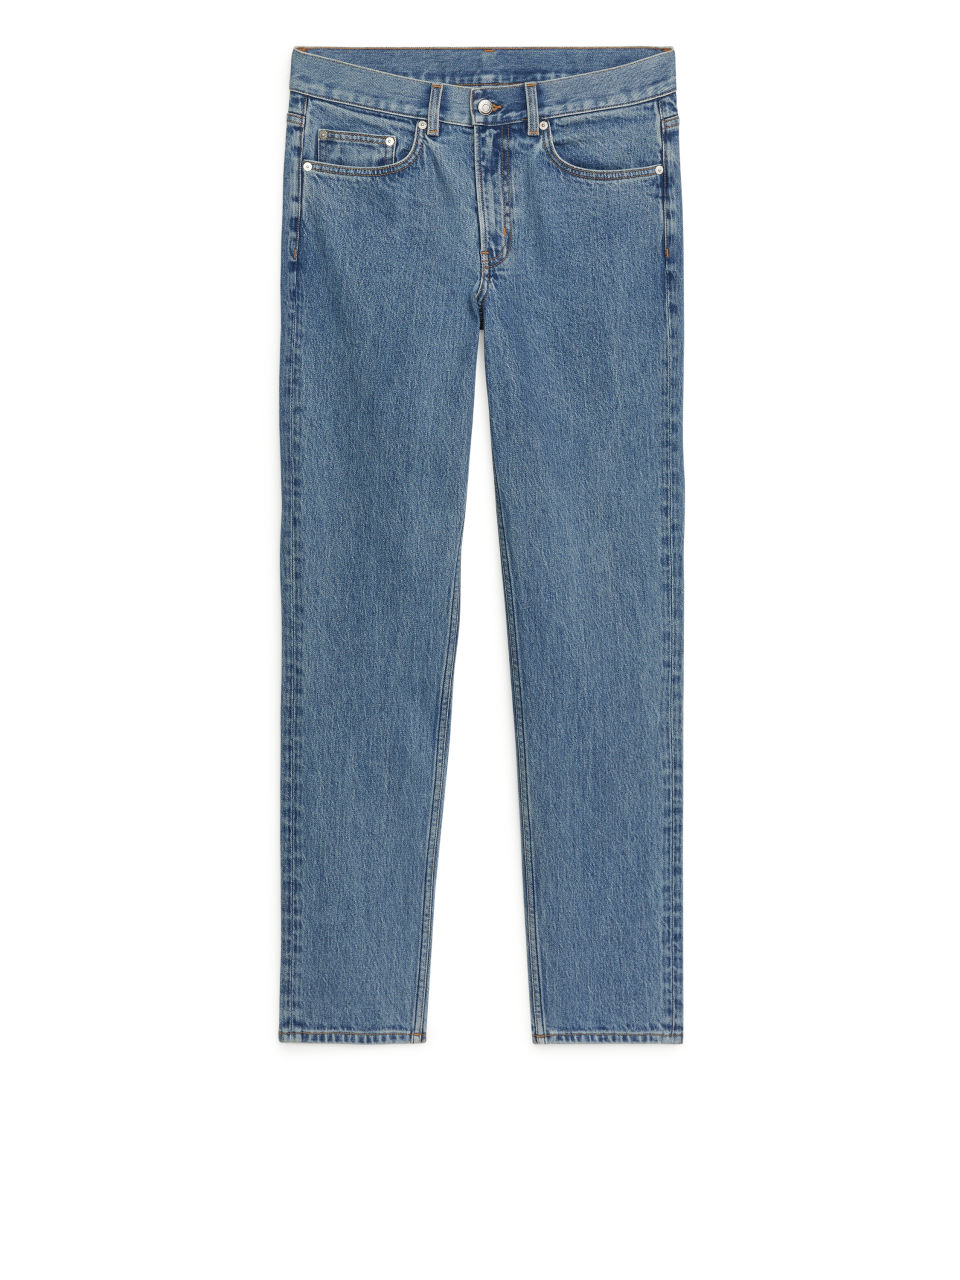 SLIM Stretch Jeans - Turquoise